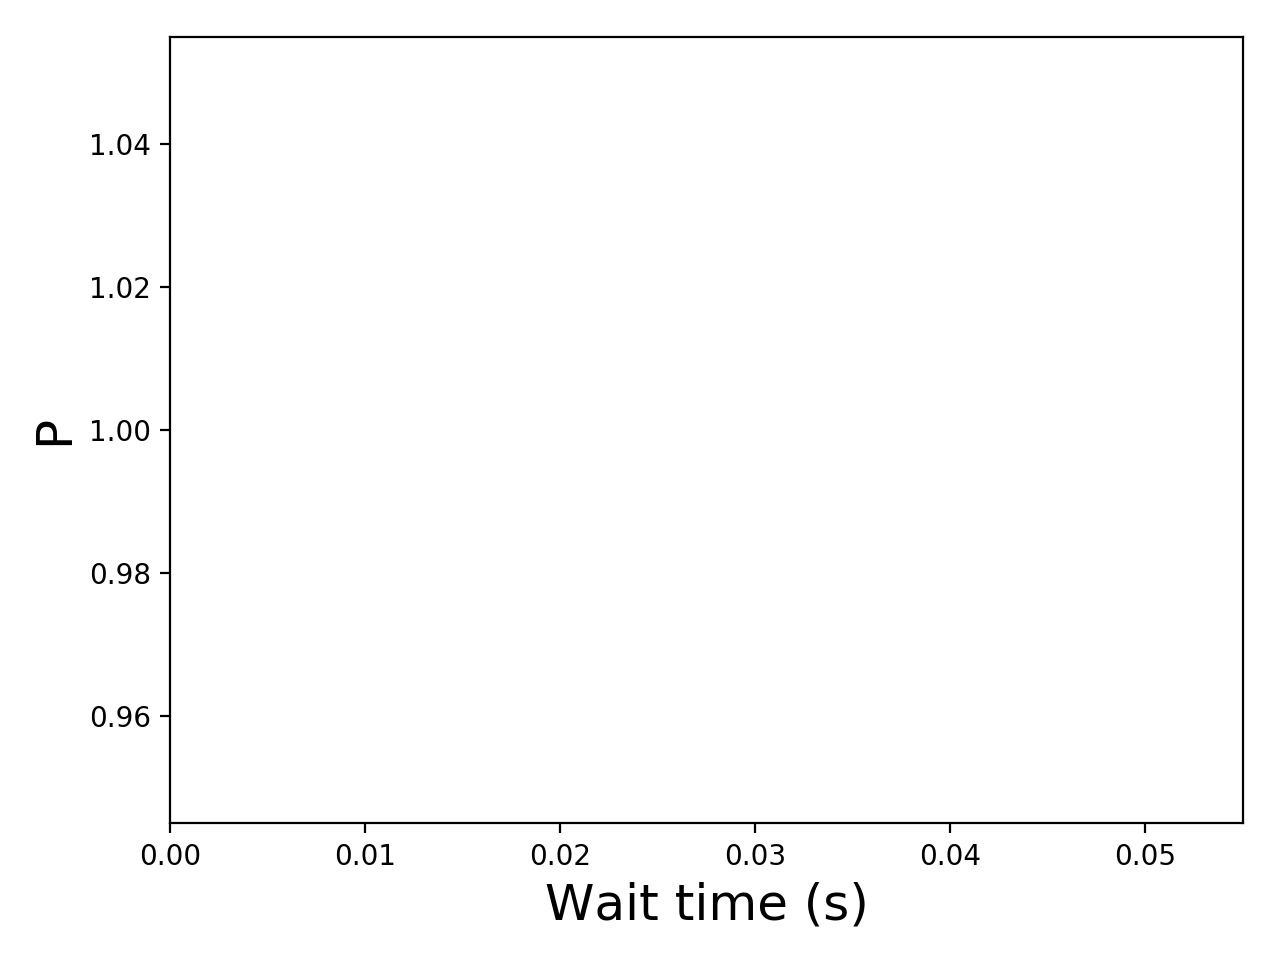 Task wait time CDF graph for the askalon-new_ee11 trace.